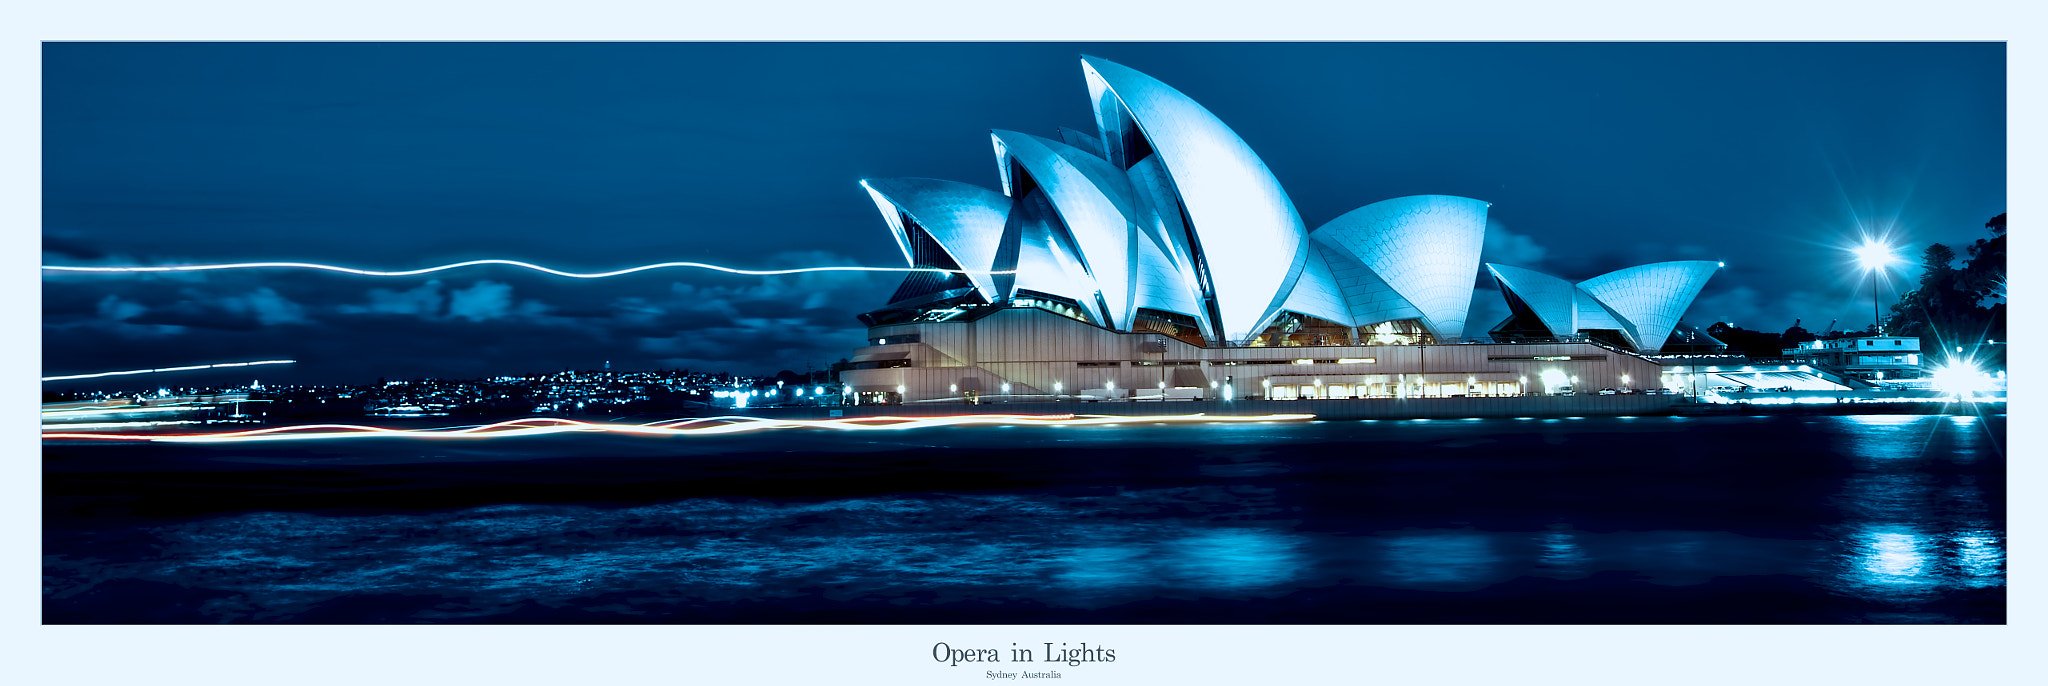 Photograph Opera in Lights by Johny Spencer on 500px